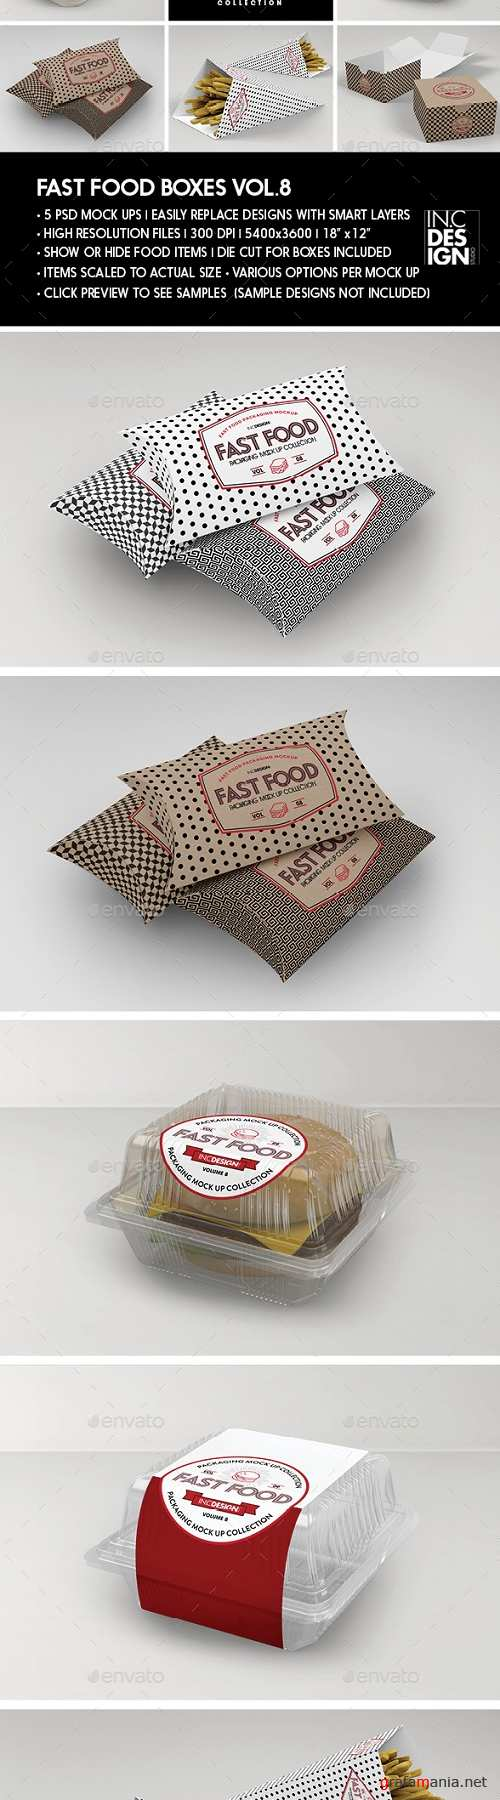 Fast Food Boxes Vol.8: Take Out Packaging Mock Ups - 19181969